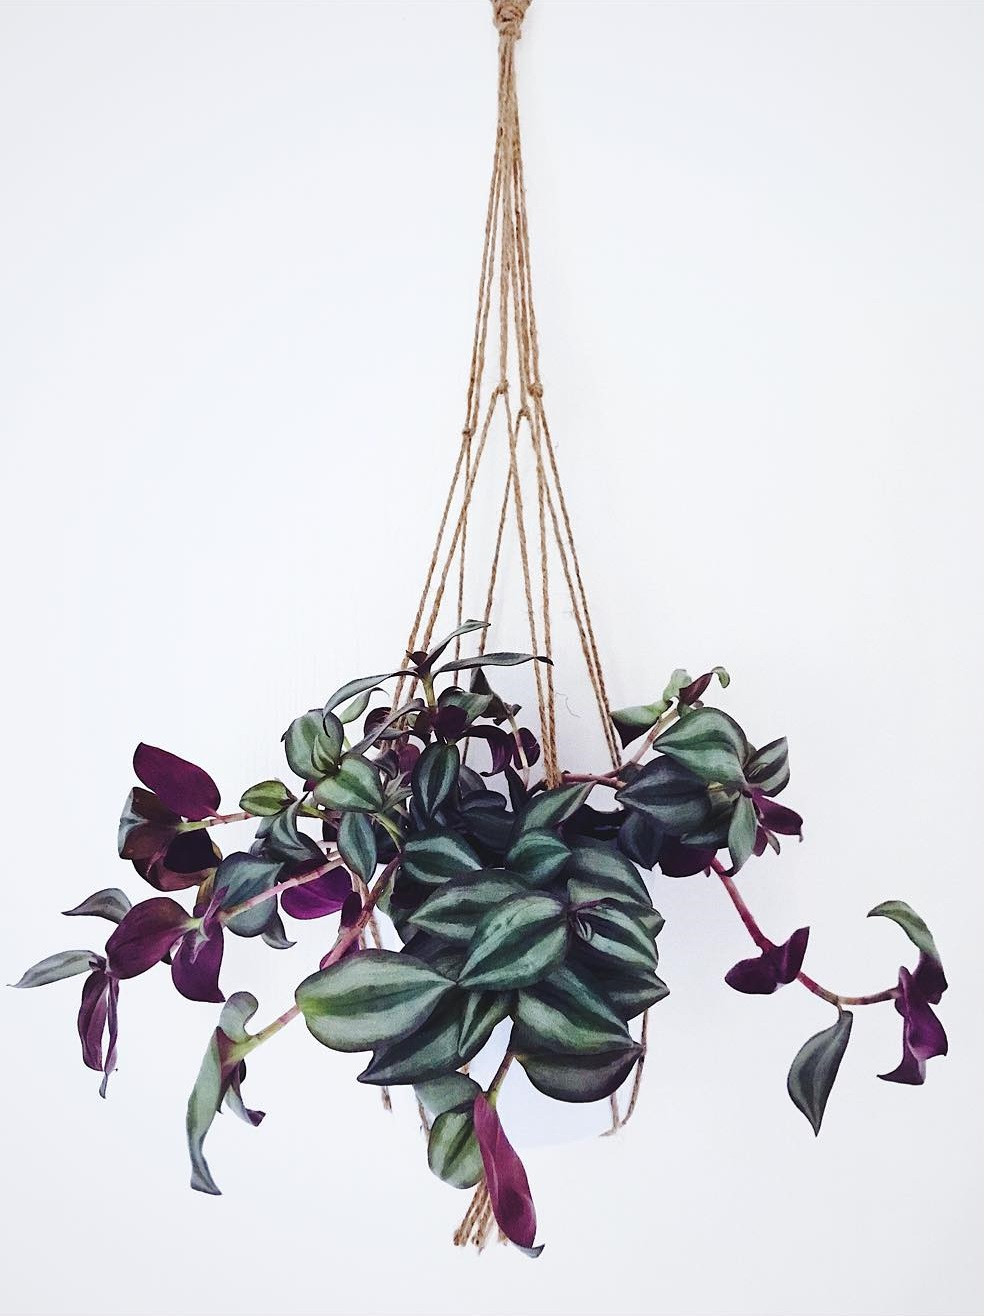 Tradescantia Zebrina Hanging Plants Trailing houseplants